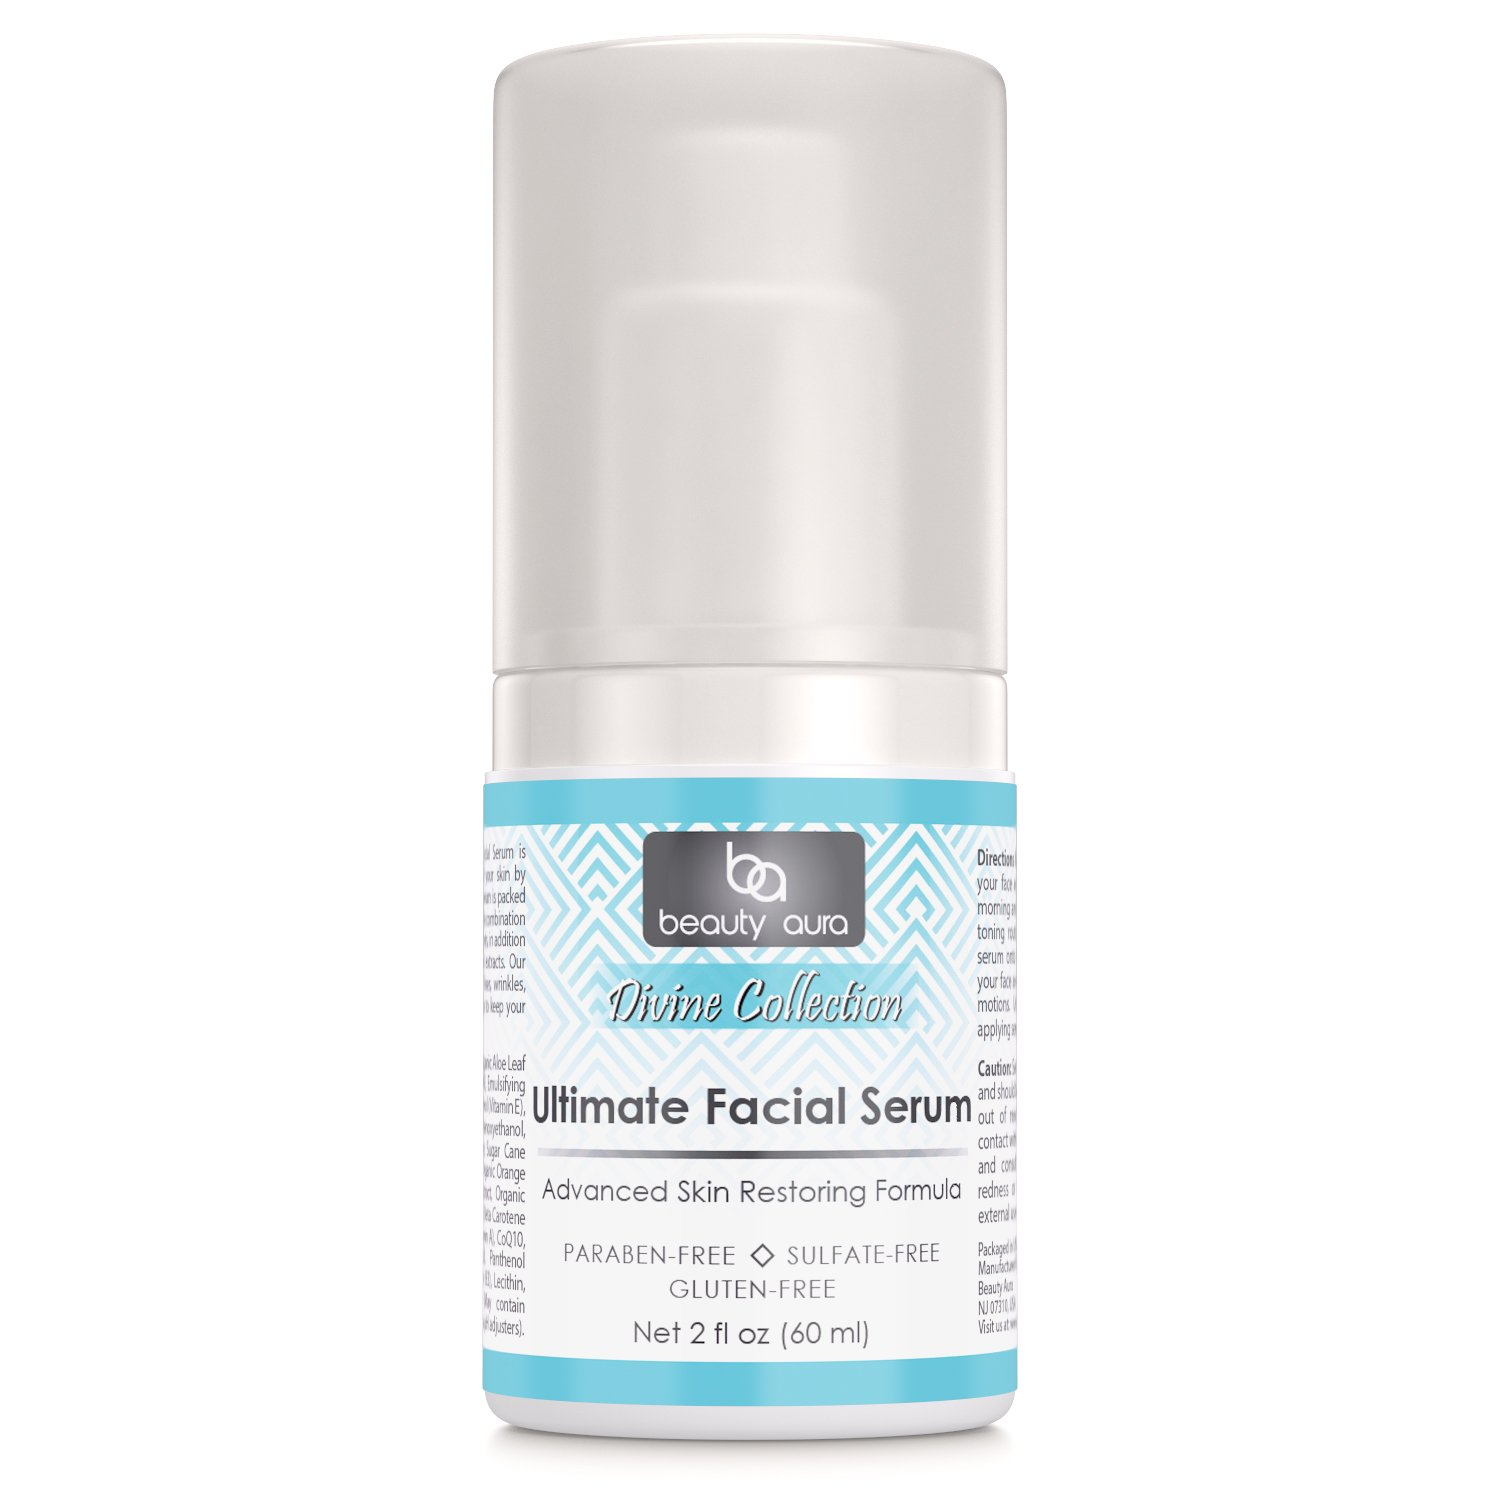 Beauty Aura Divine Collection Ultimate Facial Serum 2 Fl (60 ml) - Contains DMAE, VITAMIN C, COENZYME Q10 & ALPHA LIPOIC ACID